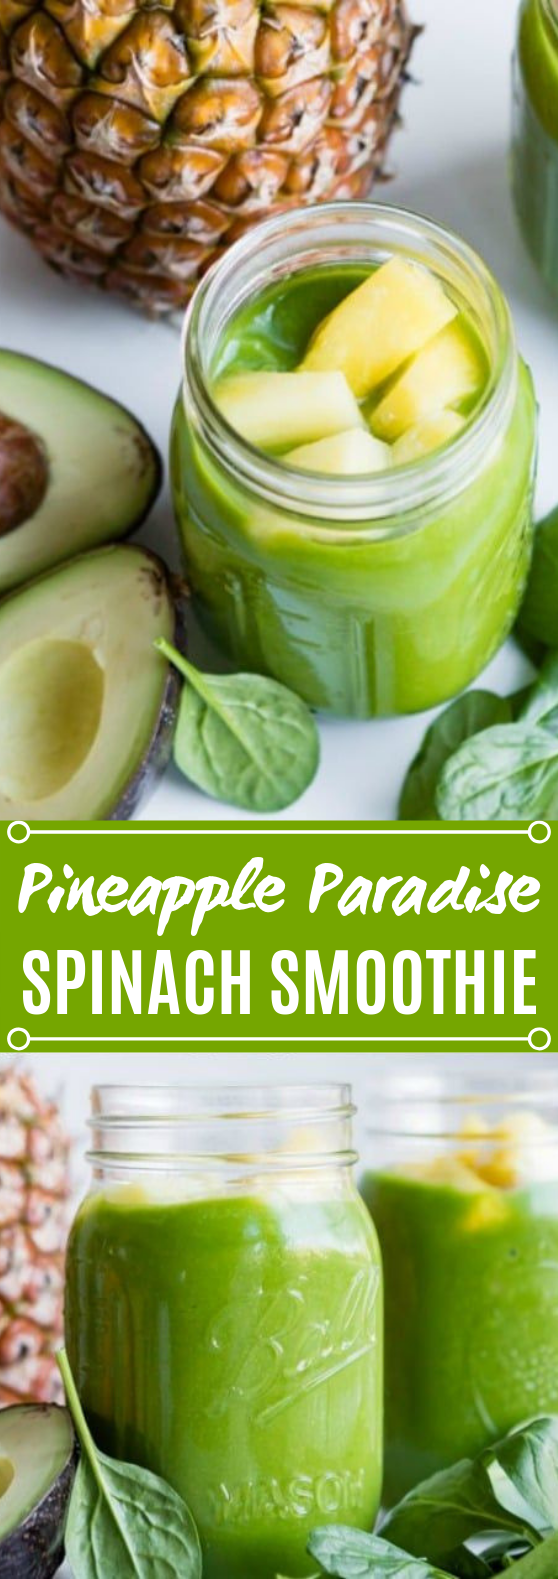 Pineapple Paradise Spinach Smoothie #drinks #smoothies